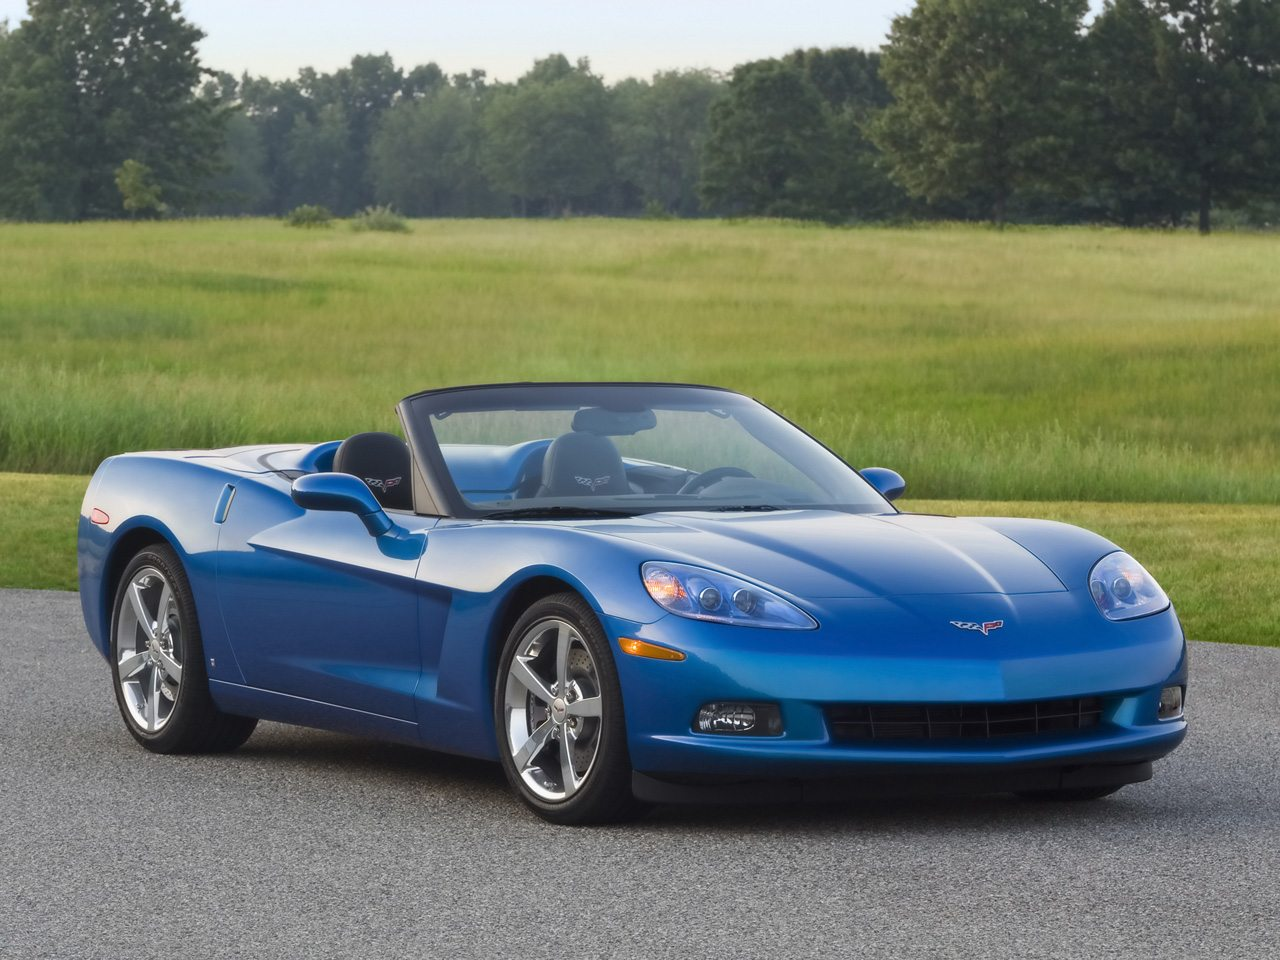 2009 C6 Corvette | Ultimate Guide (Overview, Specs, VIN ...